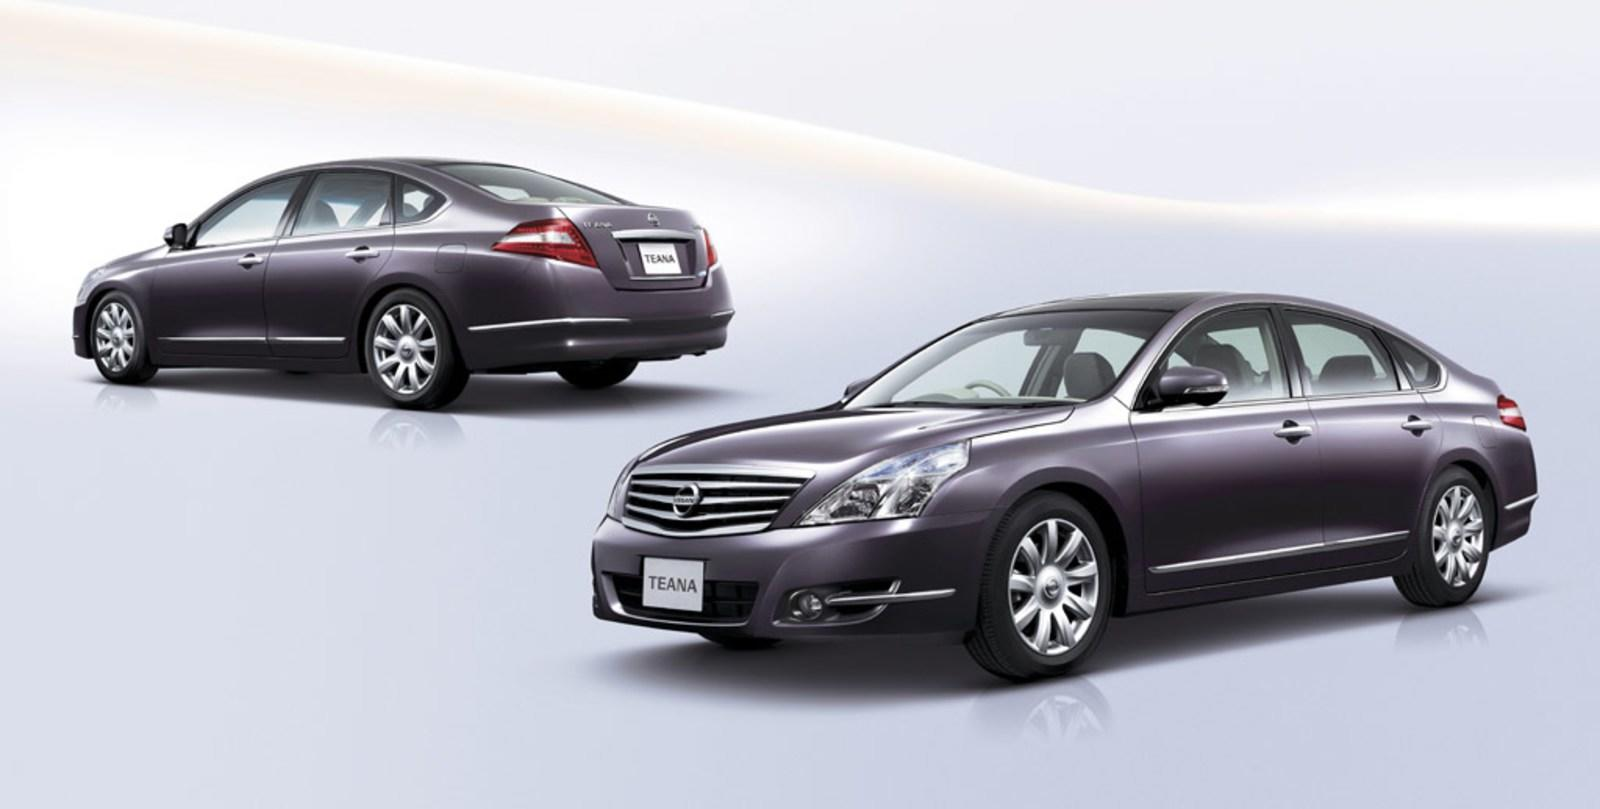 2008 Nissan Teana Review Top Speed